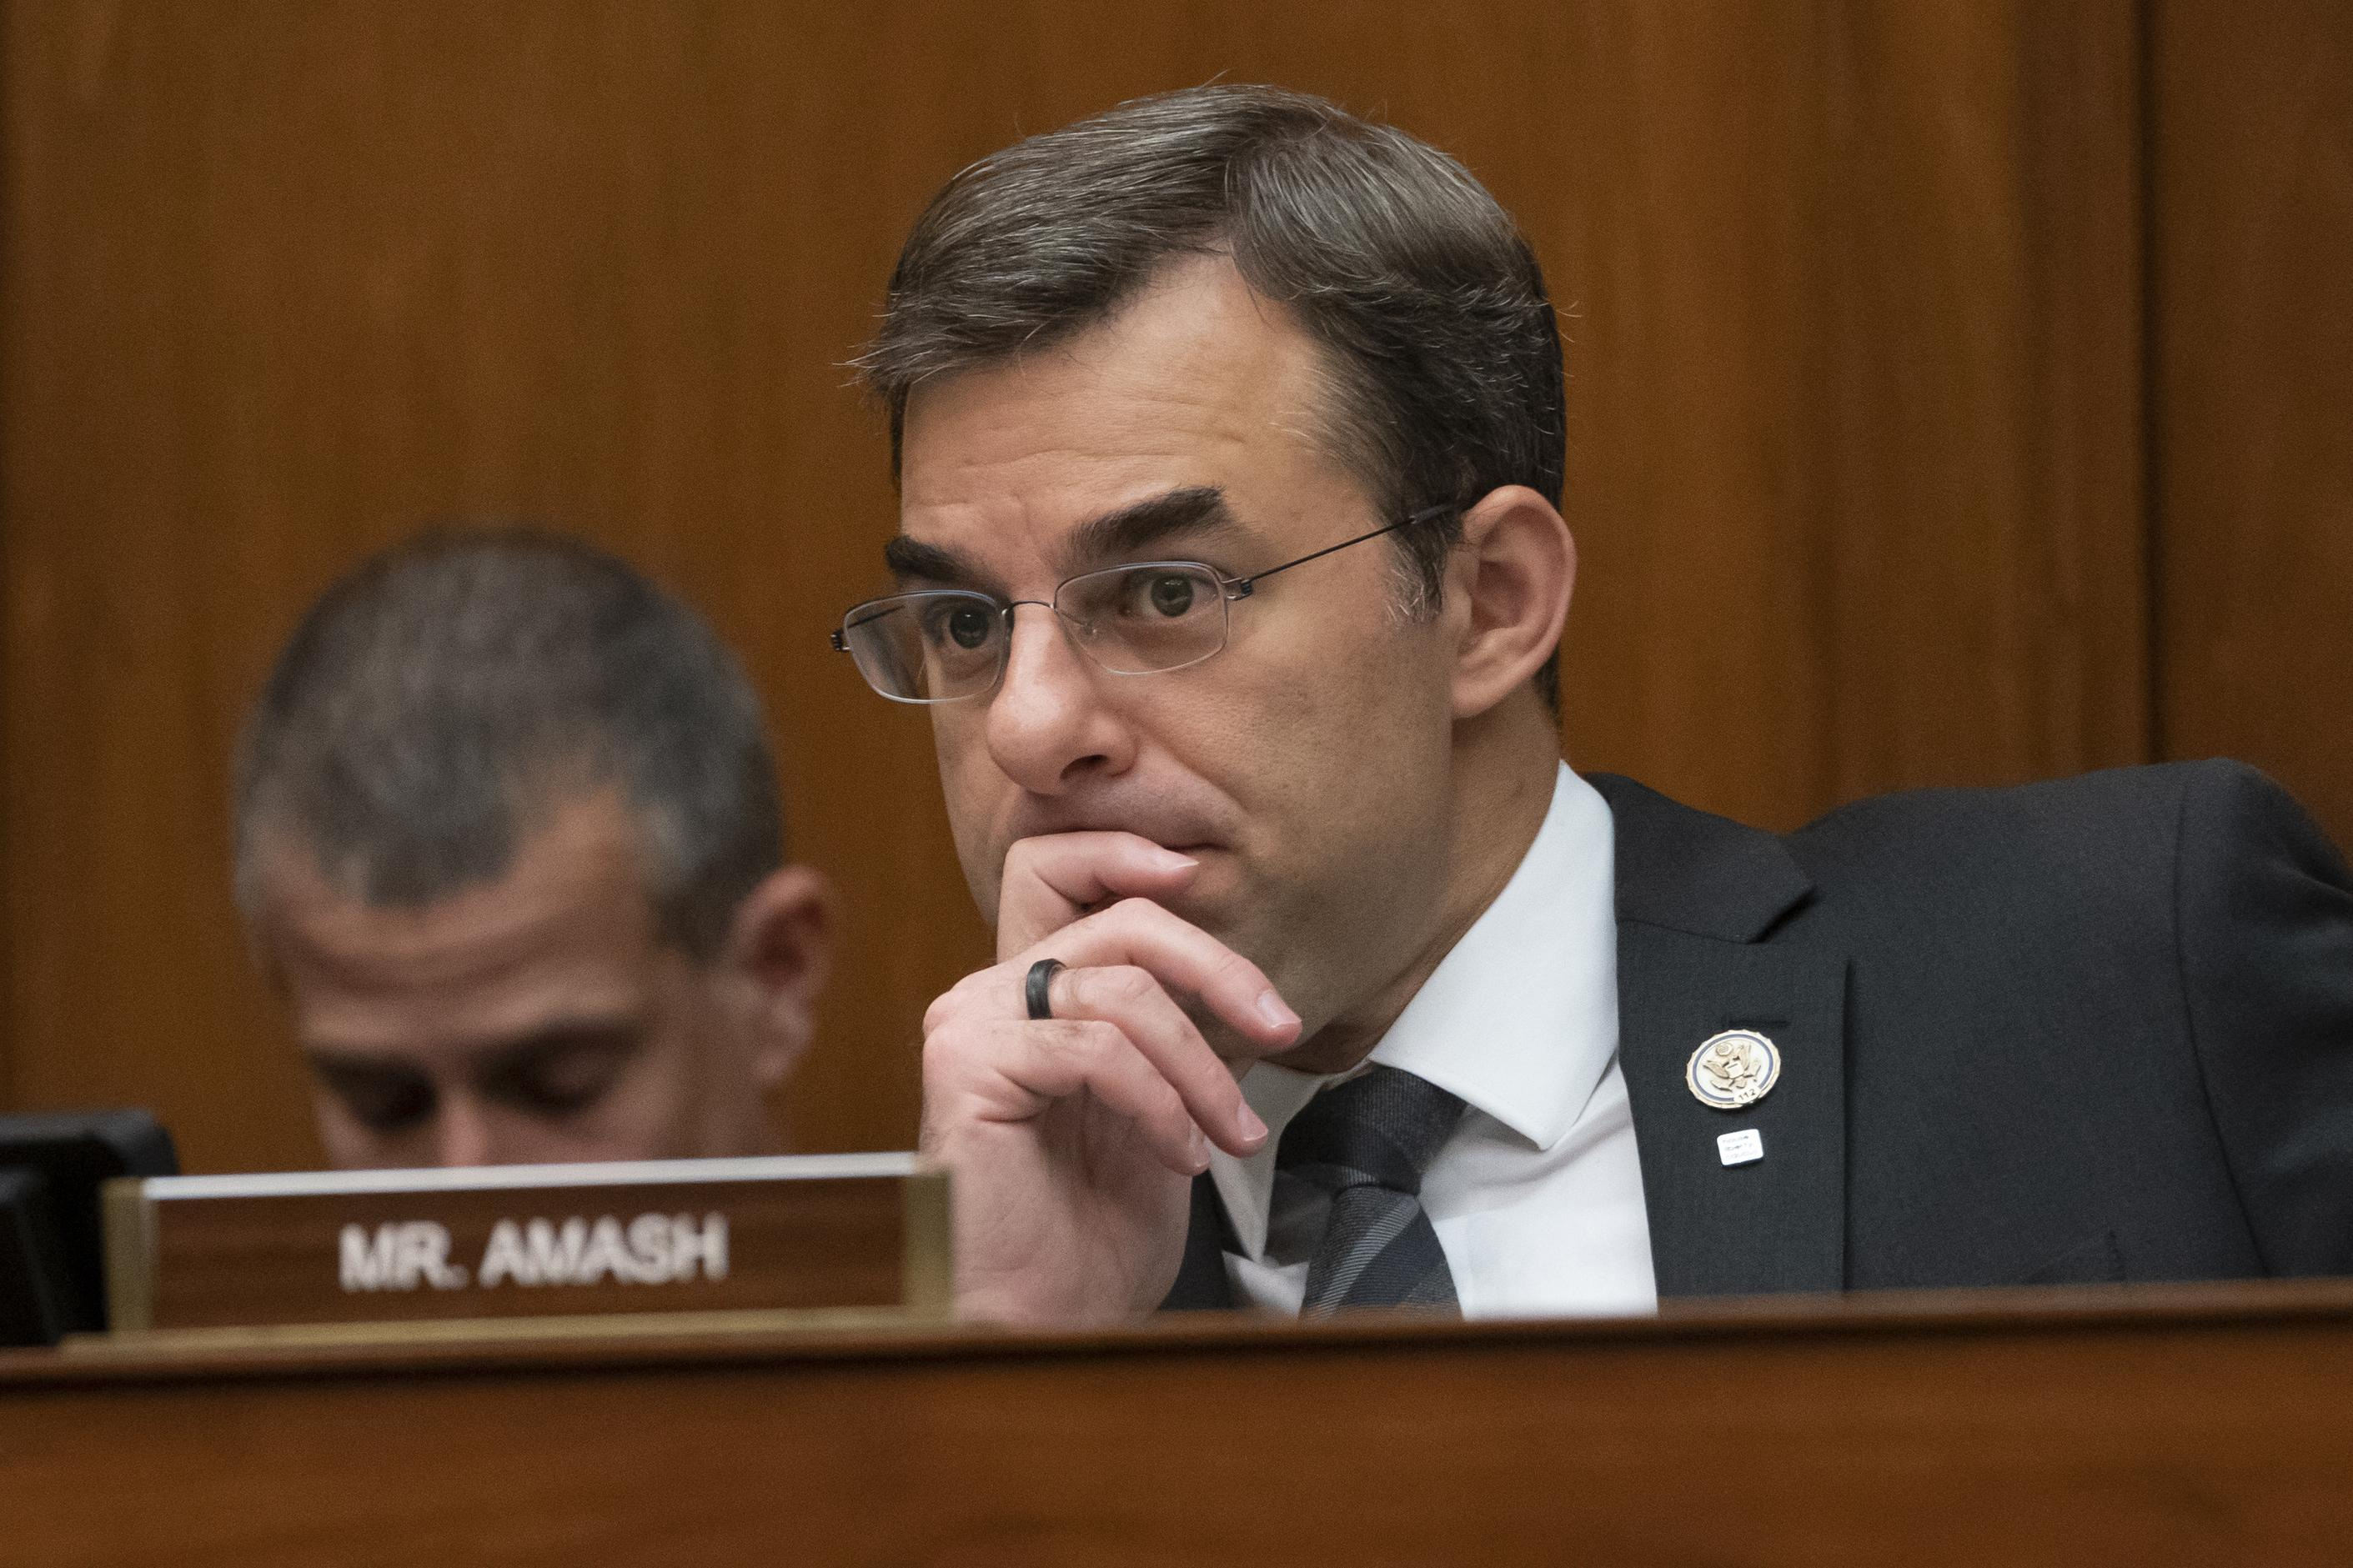 Rep. Justin Amash on latest White House shake-up: 'John Bolton never should have been hired'